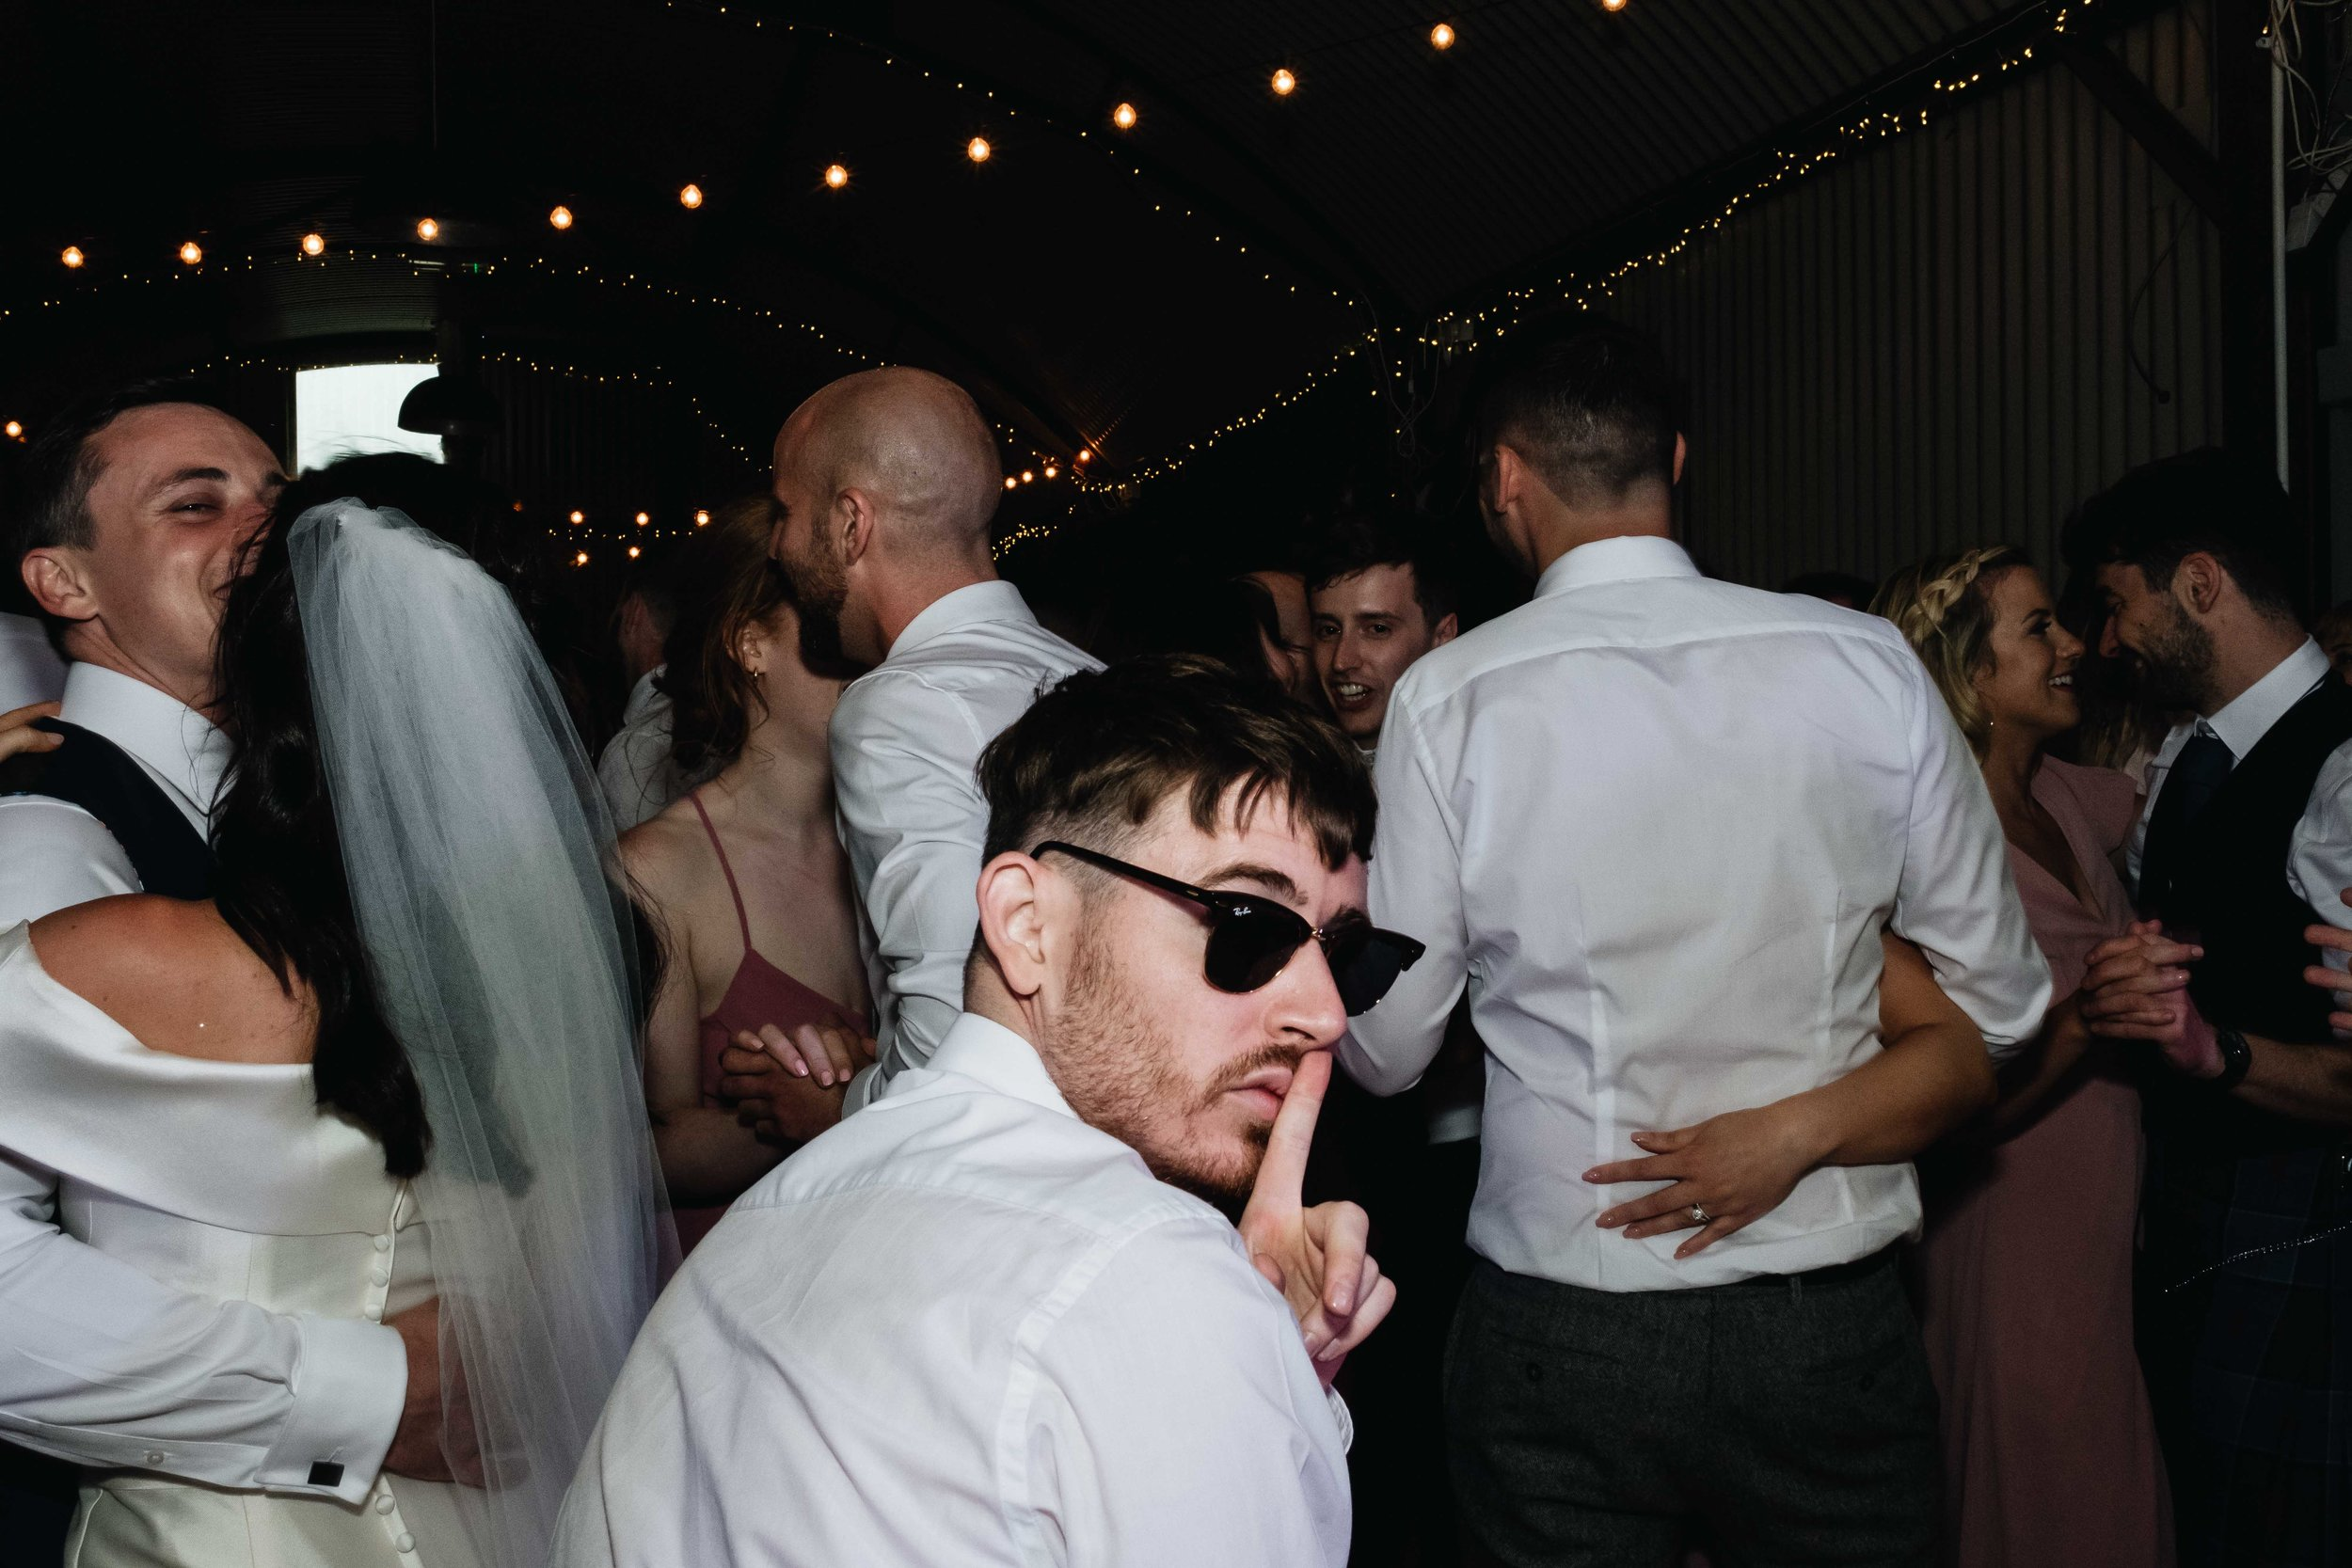 guest who is dancing is wearing sun glasses